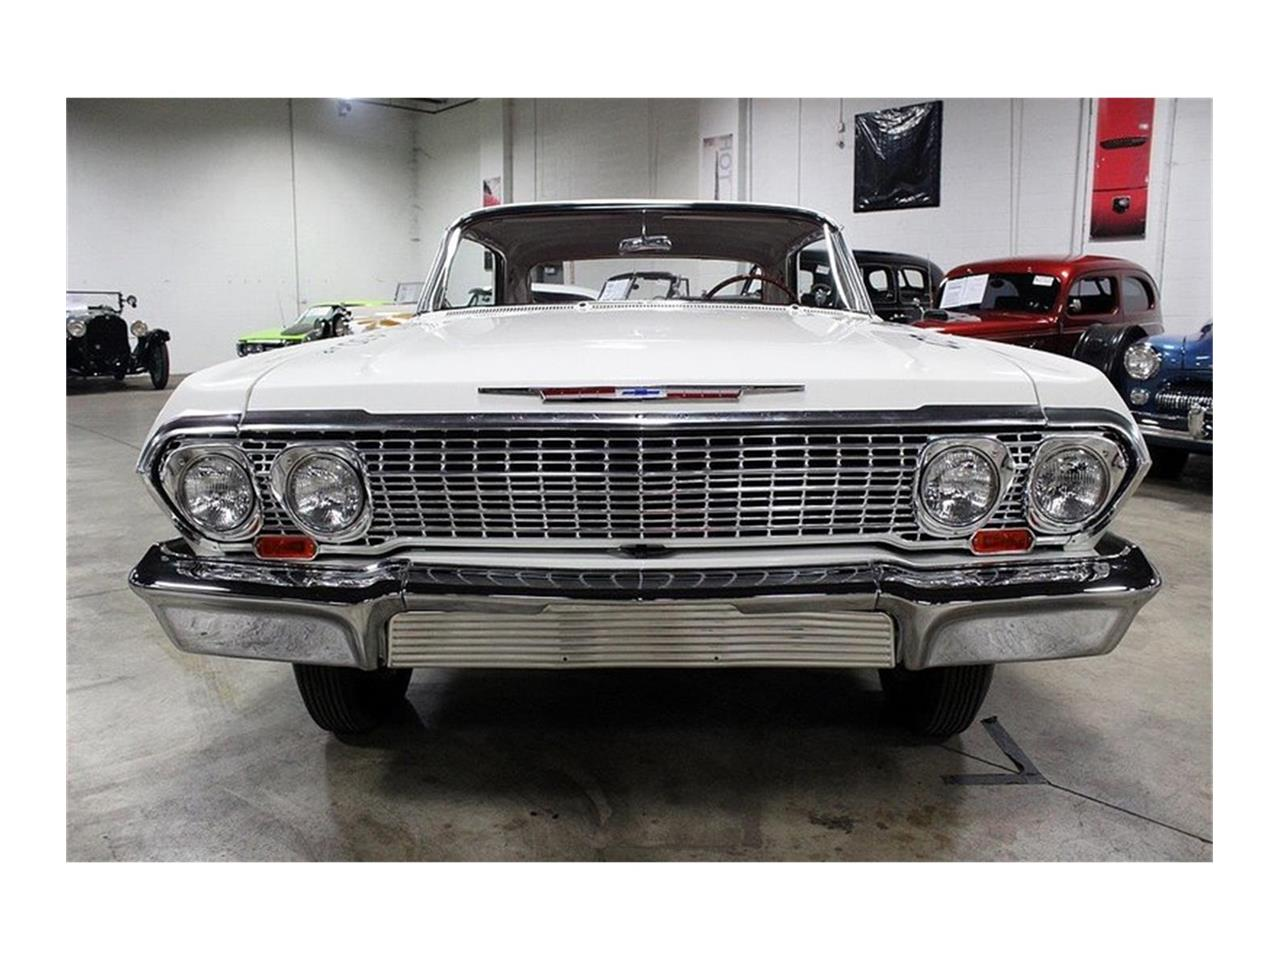 Large Picture of Classic '63 Chevrolet Impala located in Sterling Heights Michigan - $360,000.00 Offered by a Private Seller - QK96